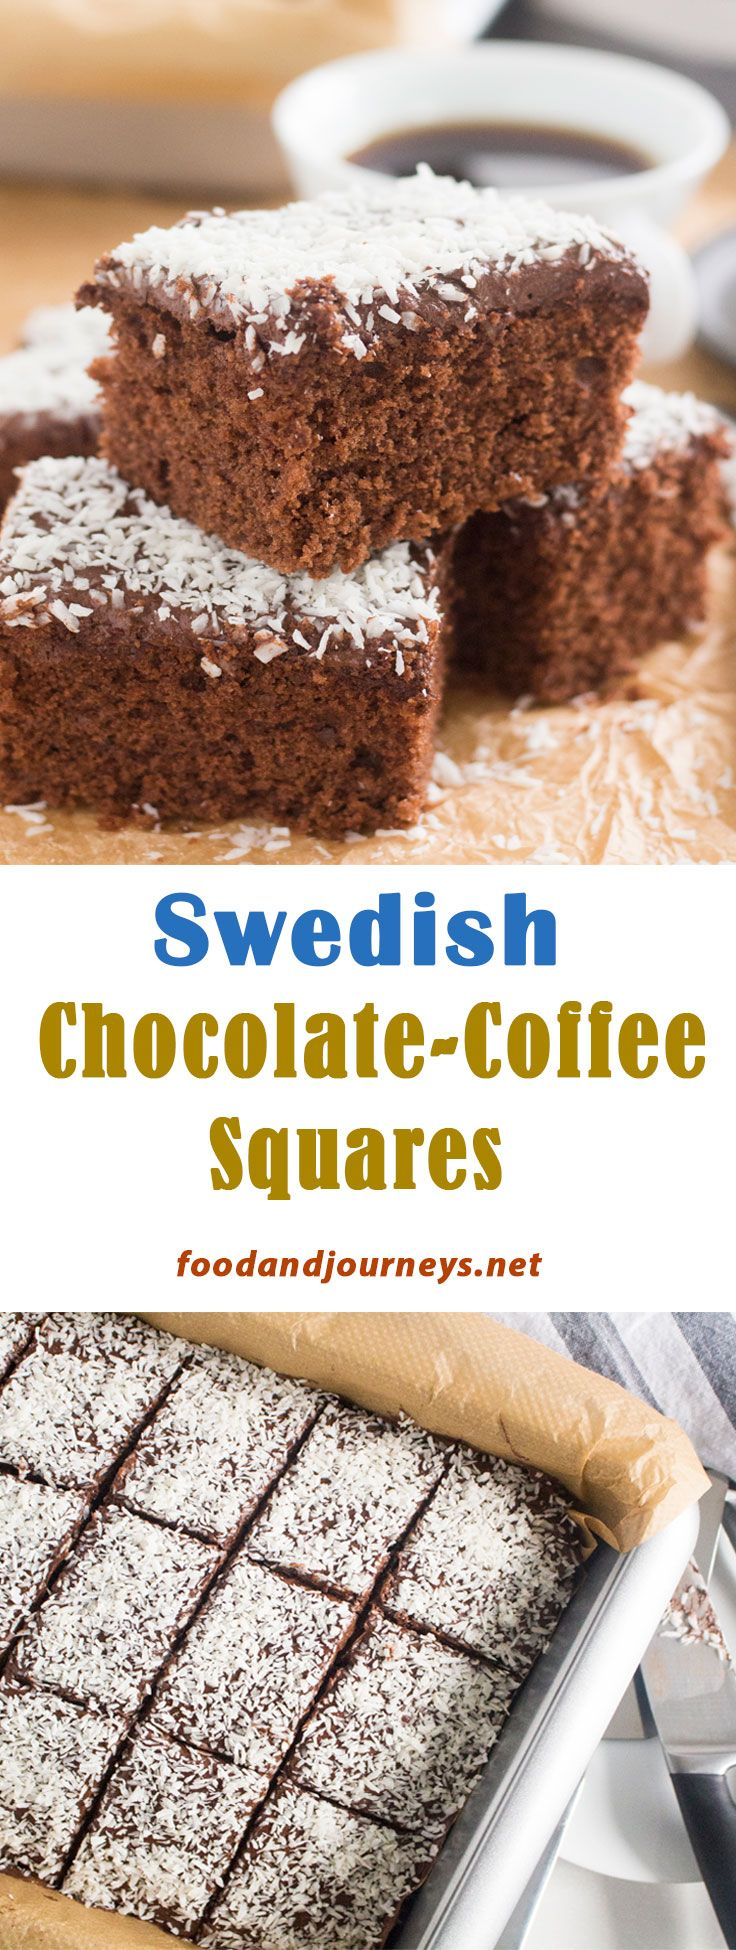 Swedish Recipe | Scandinavian Recipe | Chocolate Cake Recipe | Coffee Cake Recipe. This classic Swedish treat is so easy to make! Moist chocolate cake with chocolate-coffee icing, topped with coconut flakes and cut into squares. Great for snack, breakfast or dessert! #chocolatecakerecipe #swedishrecipes